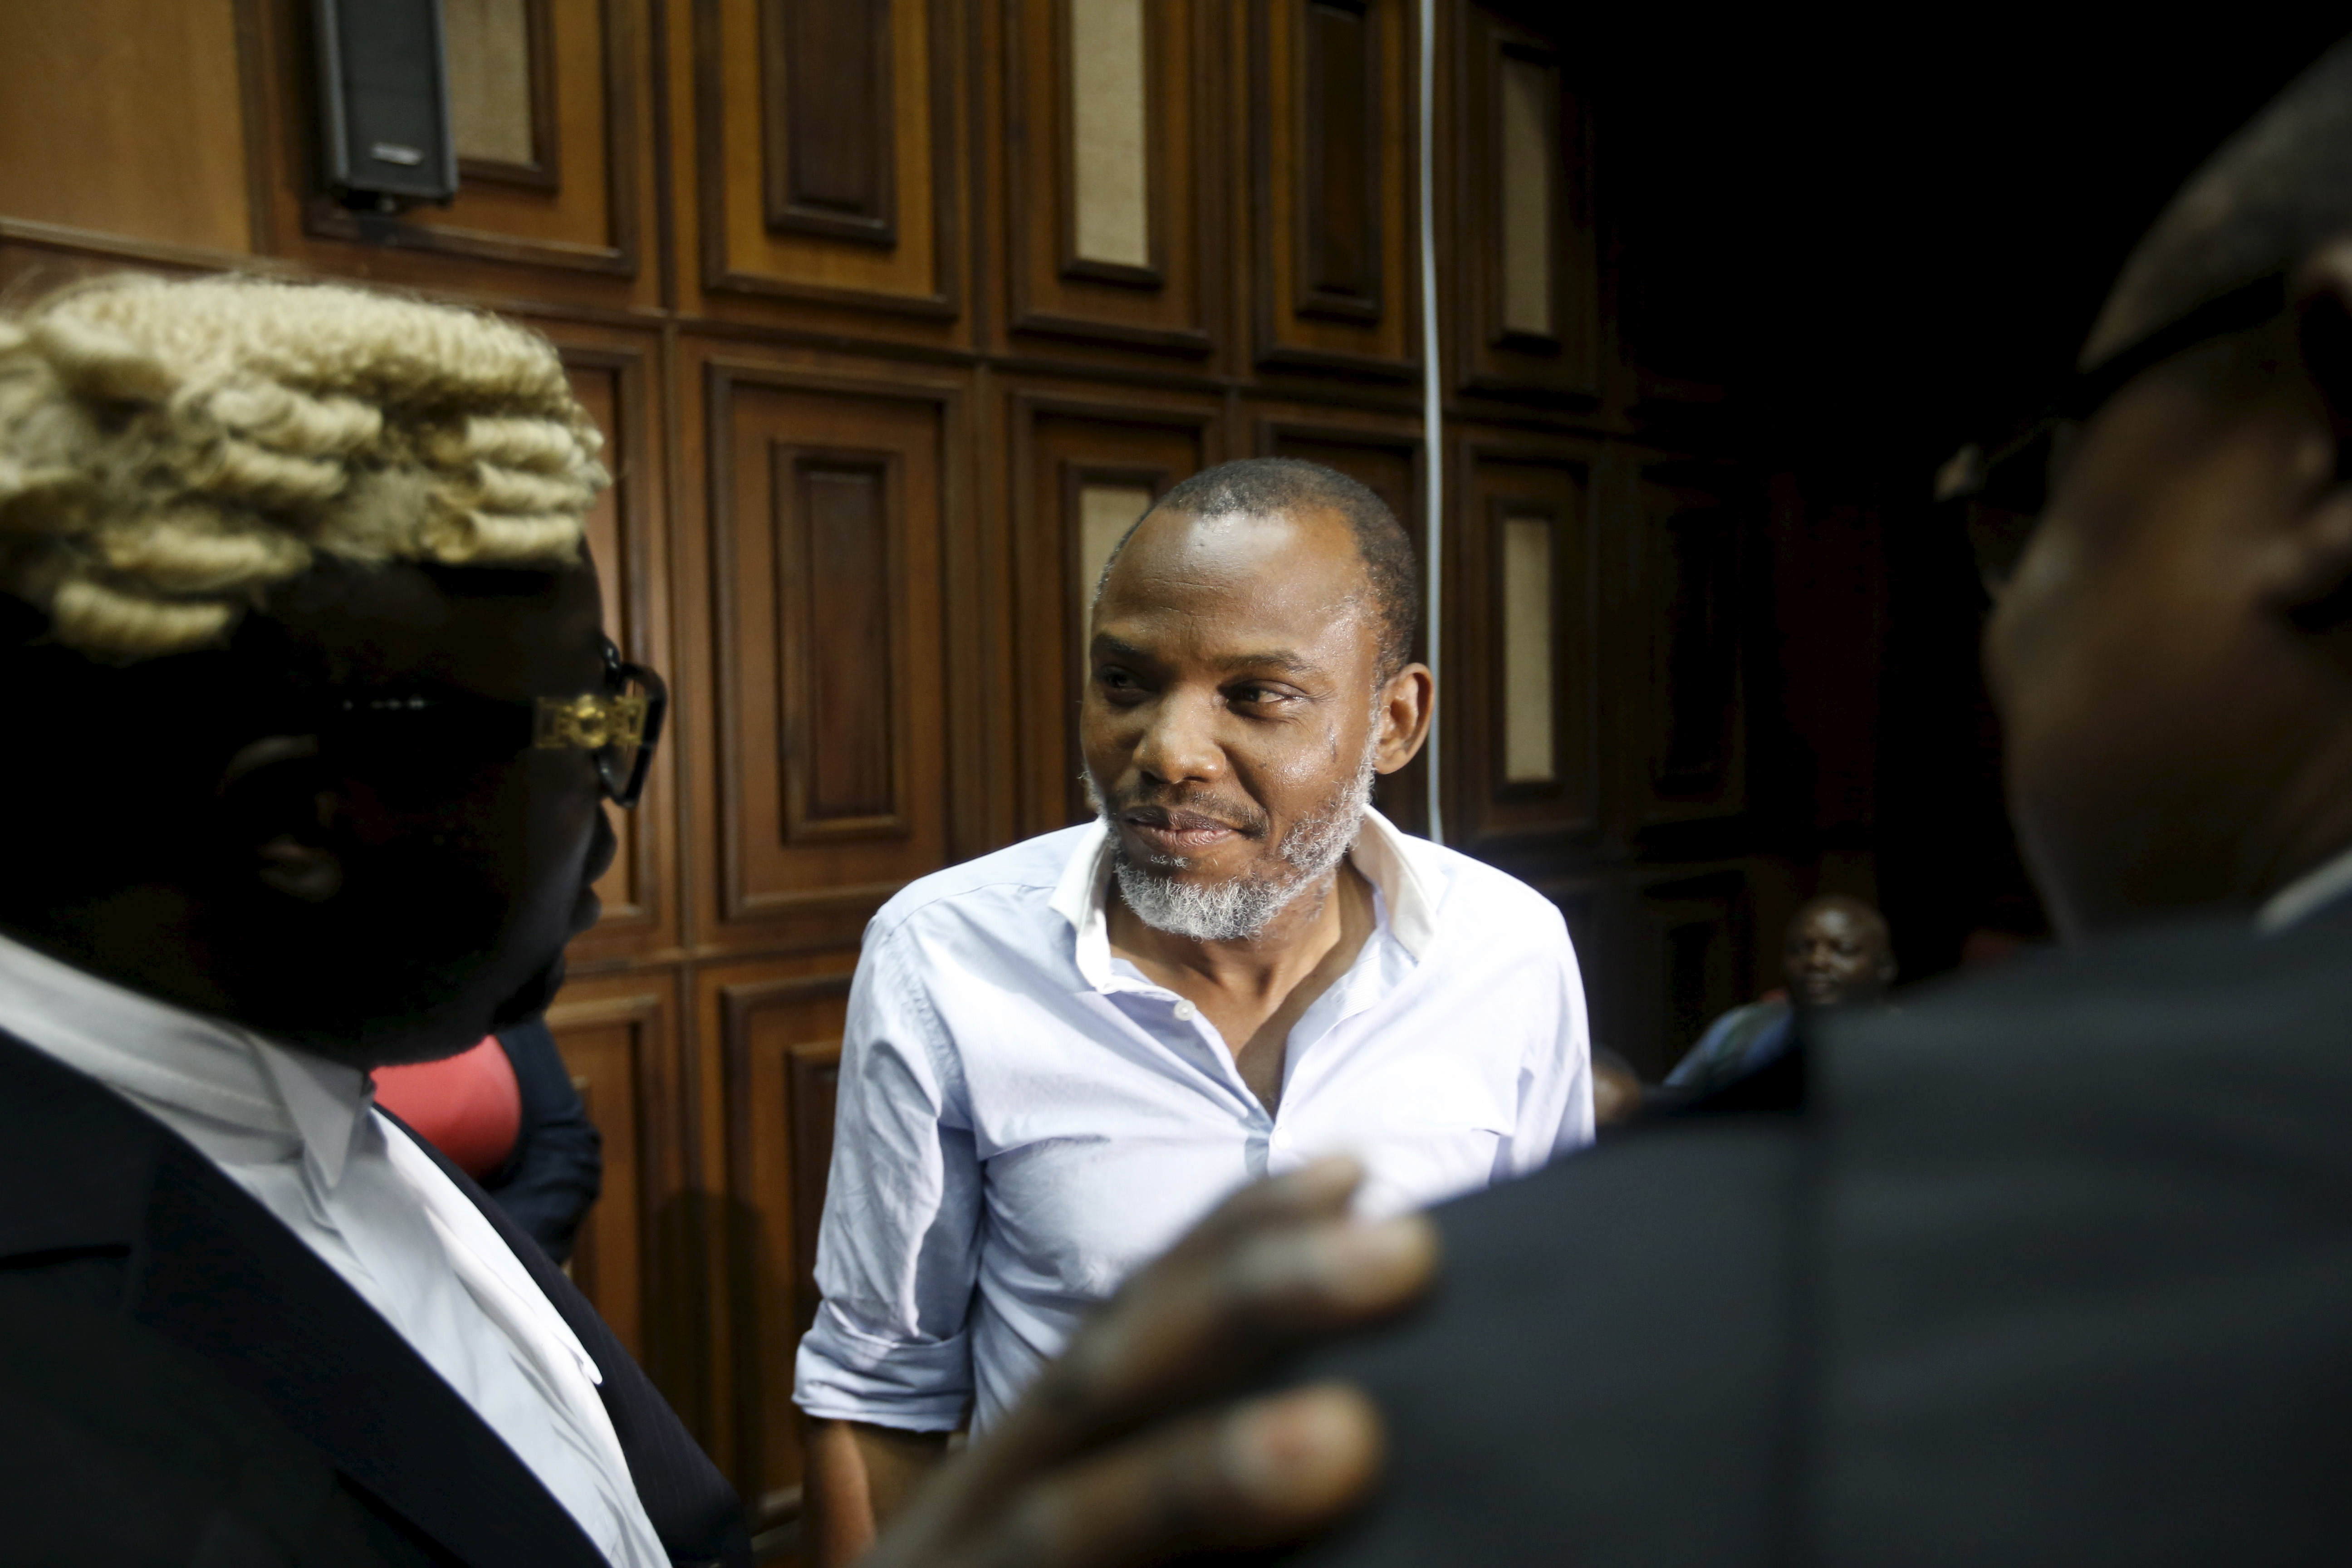 Indigenous People of Biafra (IPOB) leader Nnamdi Kanu is seen at the Federal high court Abuja, Nigeria January 20, 2016. REUTERS/Afolabi Sotunde